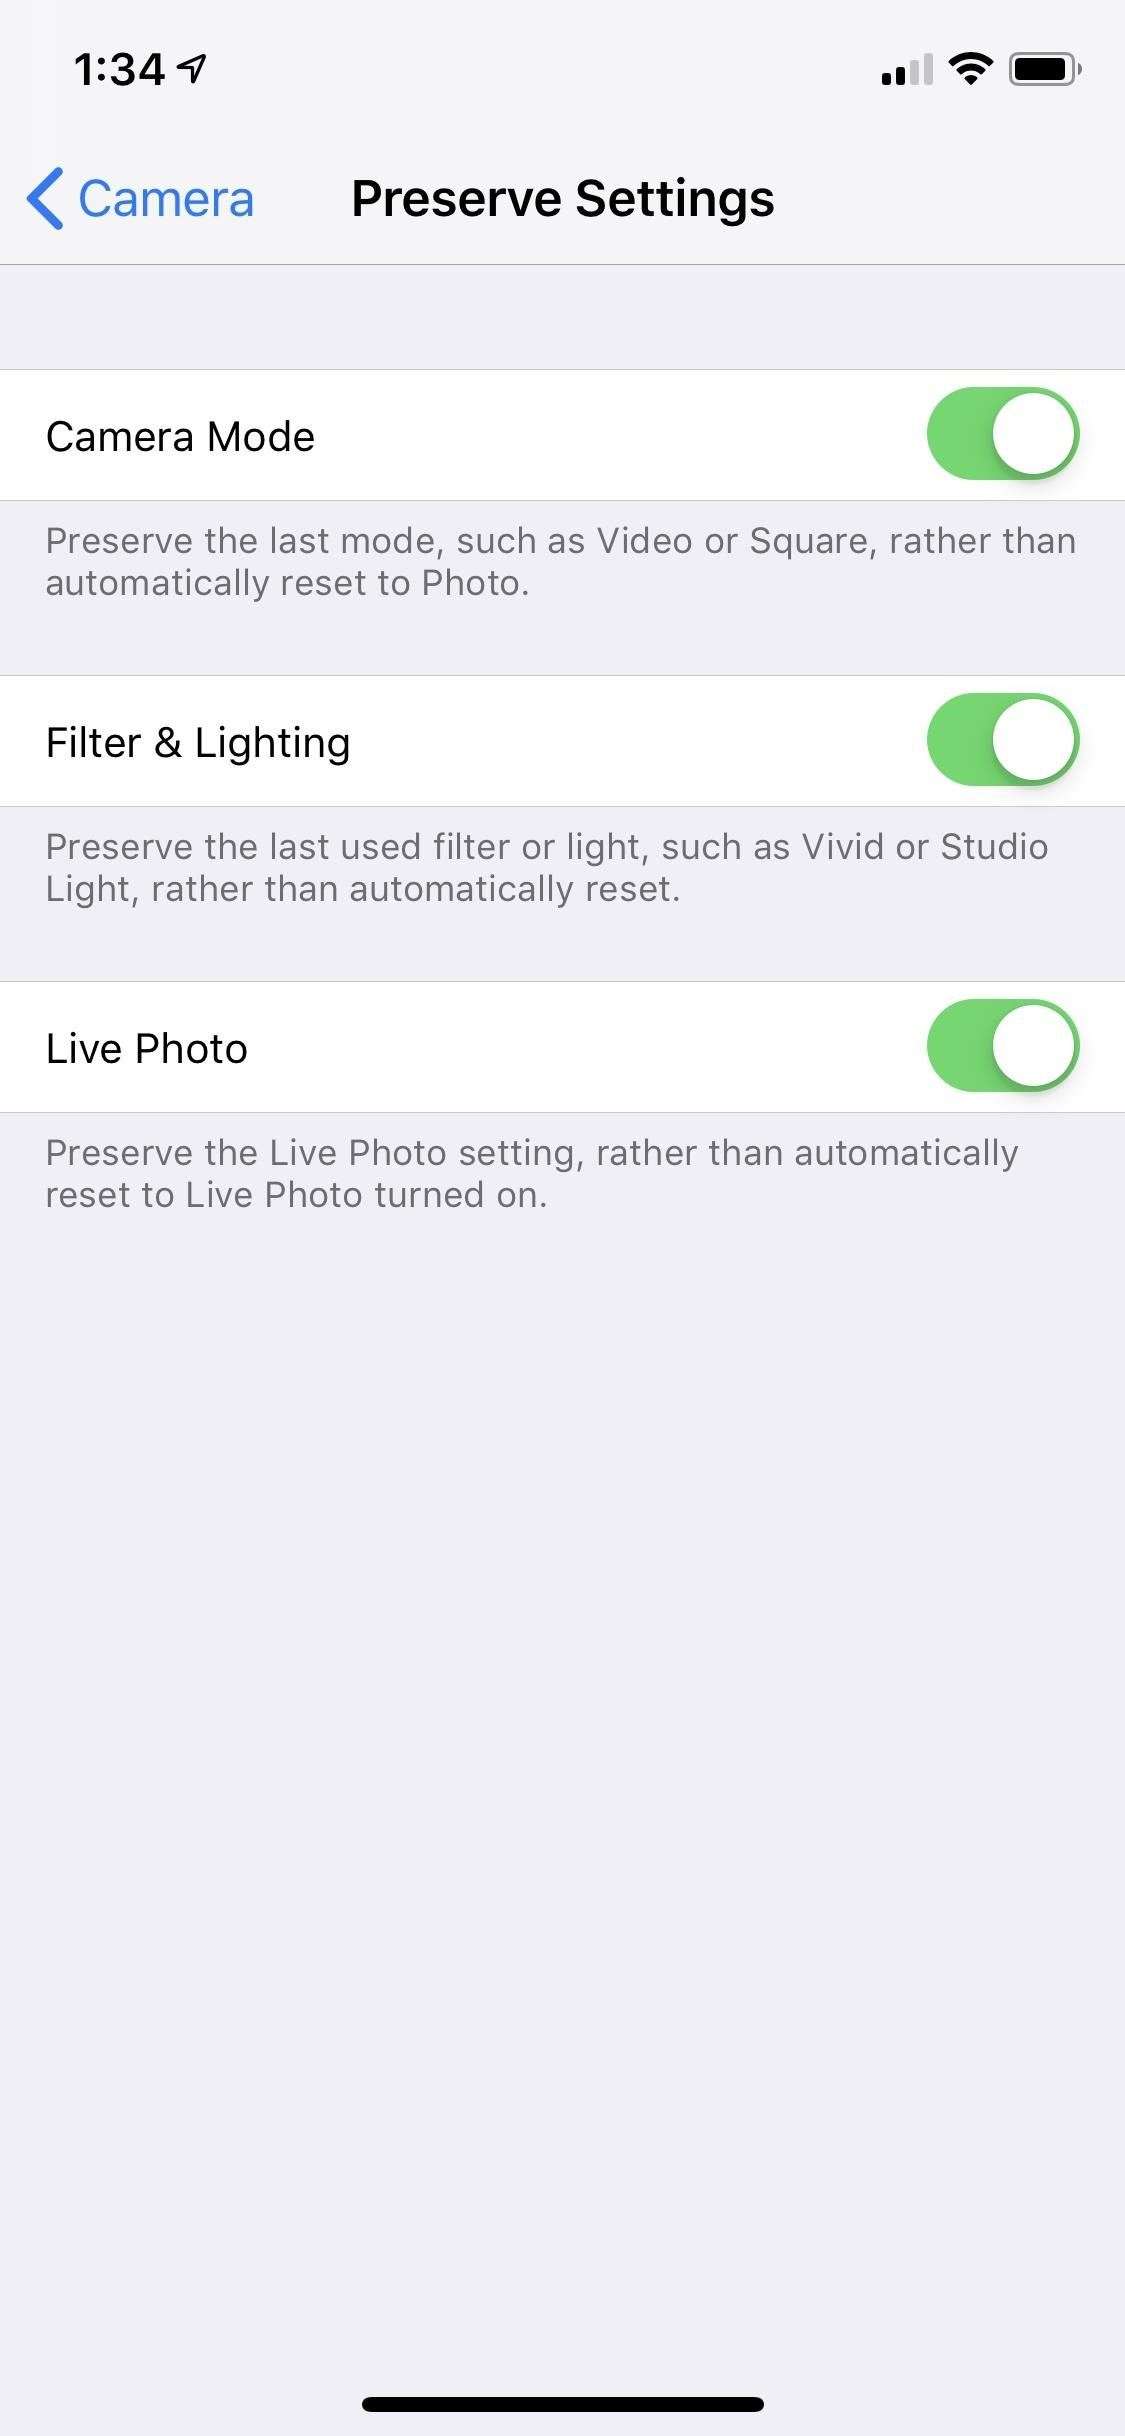 How to Save Your iPhone's Last Used Camera Settings So They're Ready Next Time You Take a Photo or Video